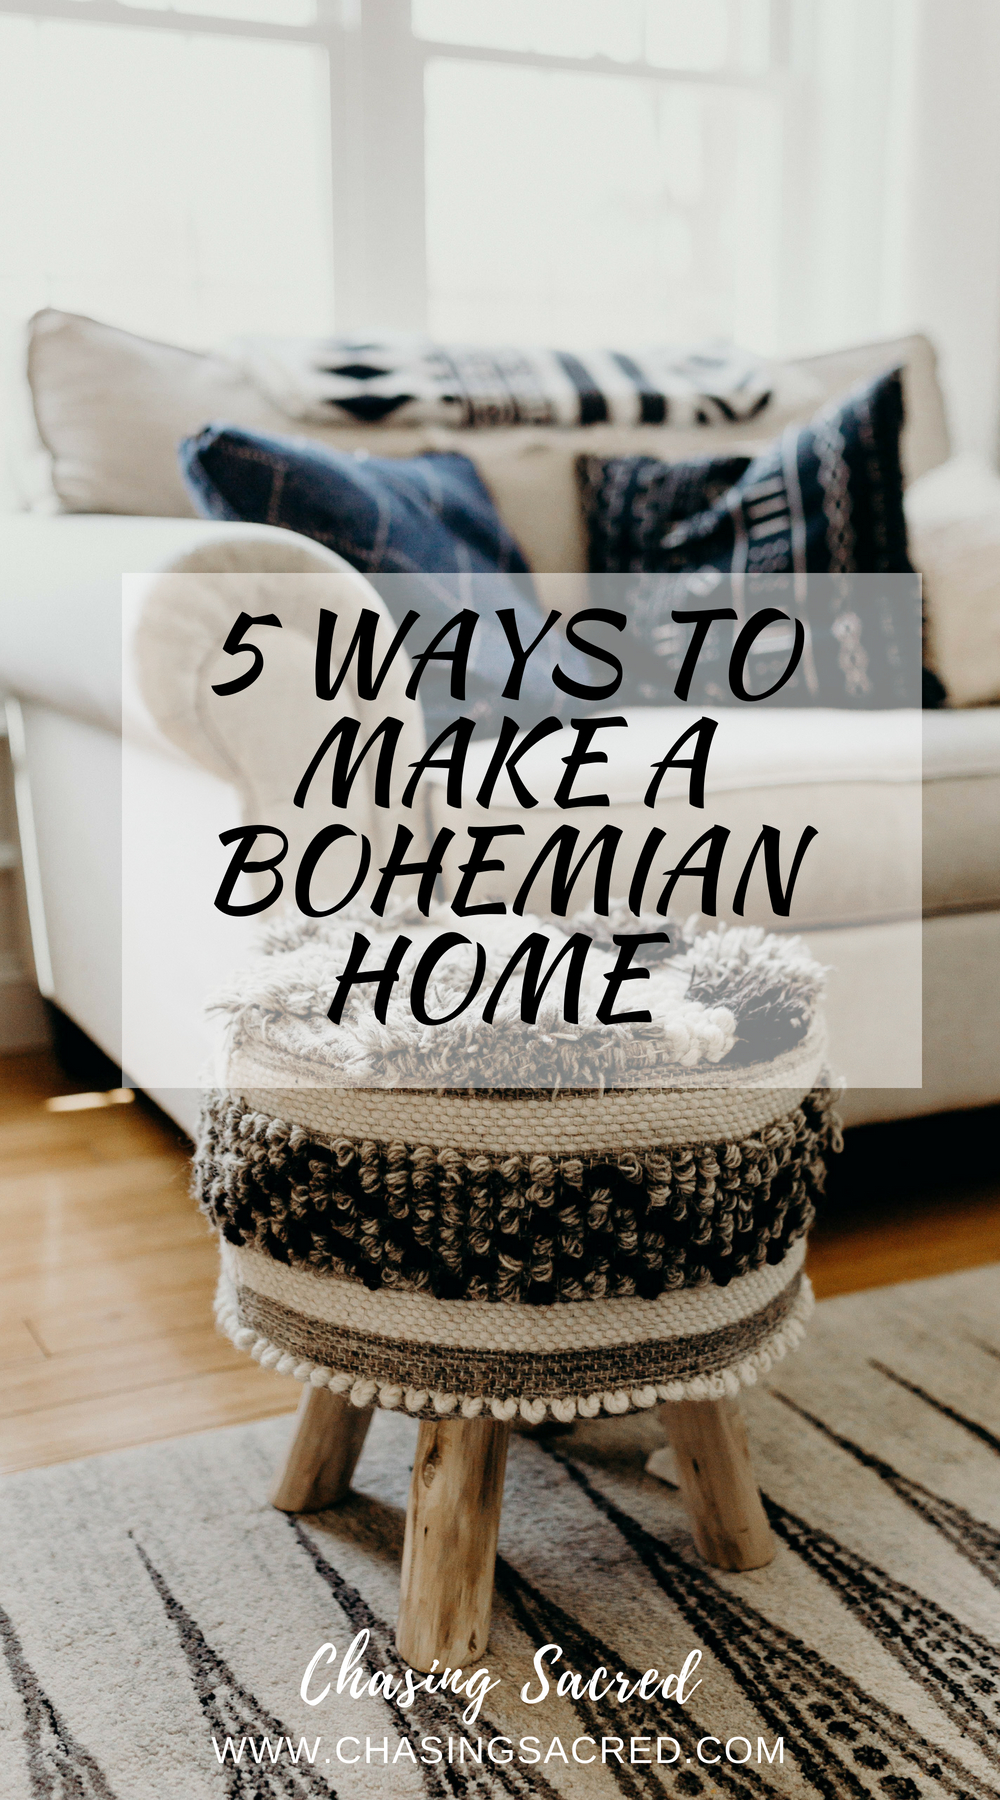 5 ways to make a bohemian home